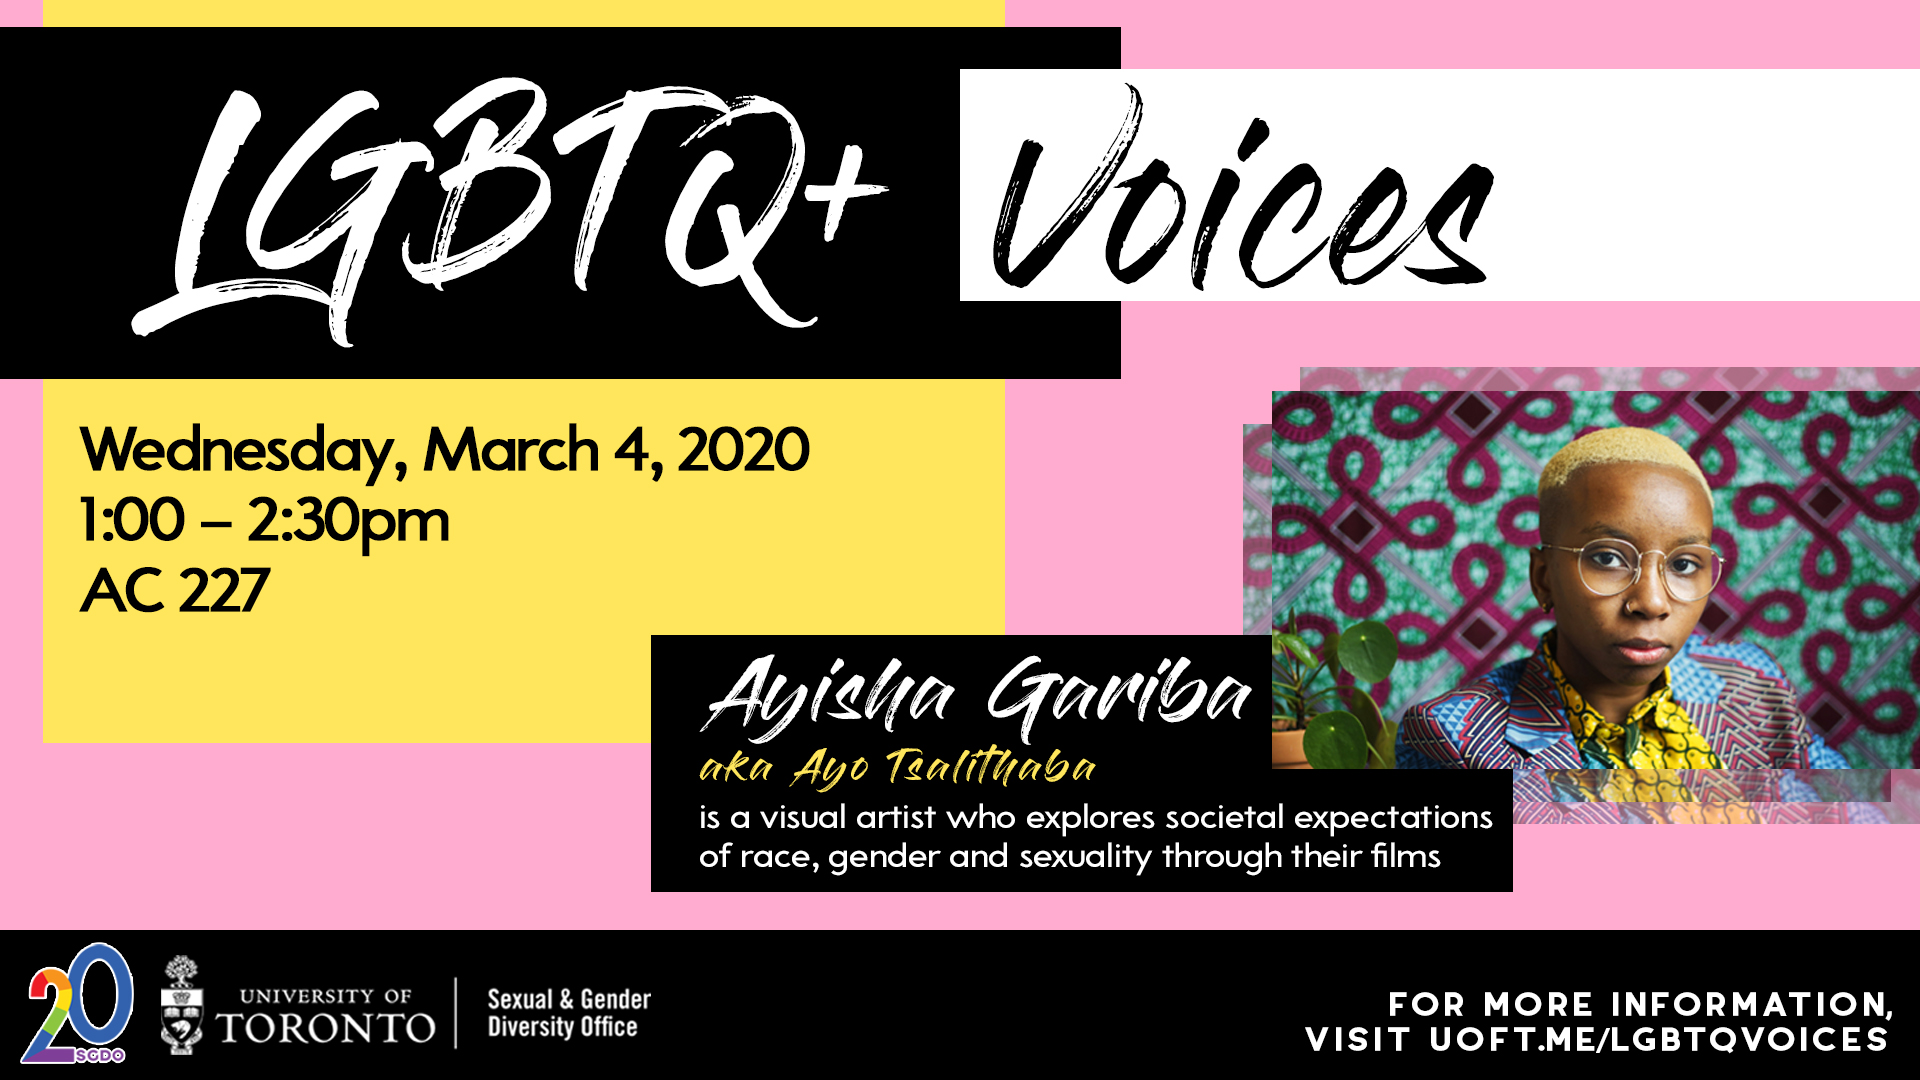 Image of LGBTQ+ Voices session featuring Ayisha Gariba on March 4, 2020 from 1 - 2:30 pm in AC 227